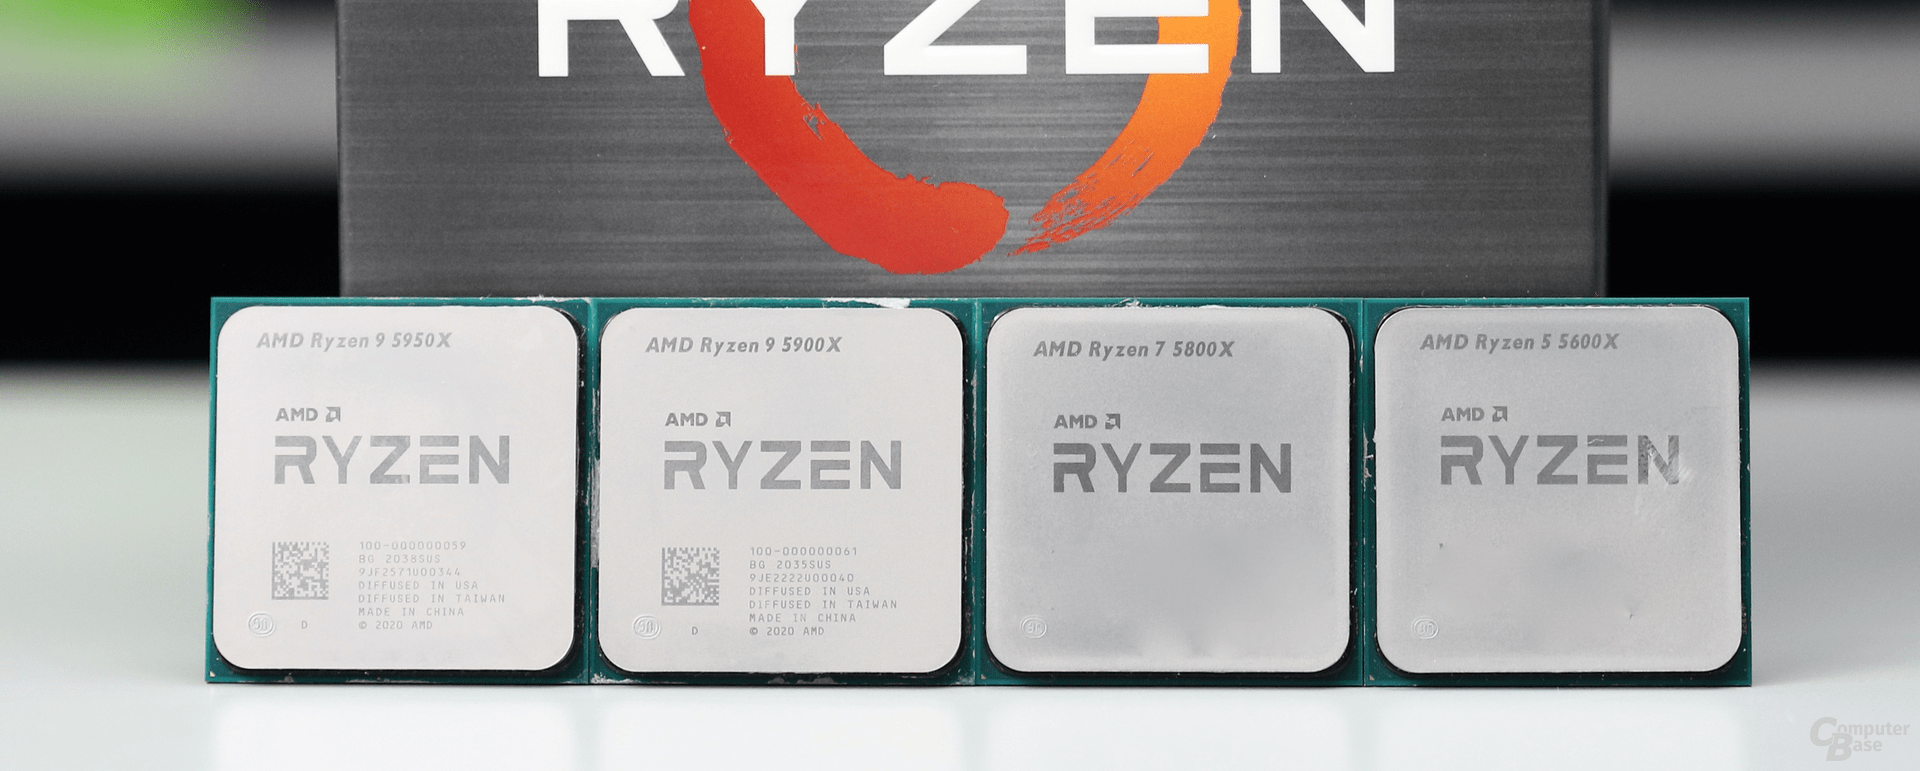 Ryzen 5000 series desktop processors are also likely to be affected